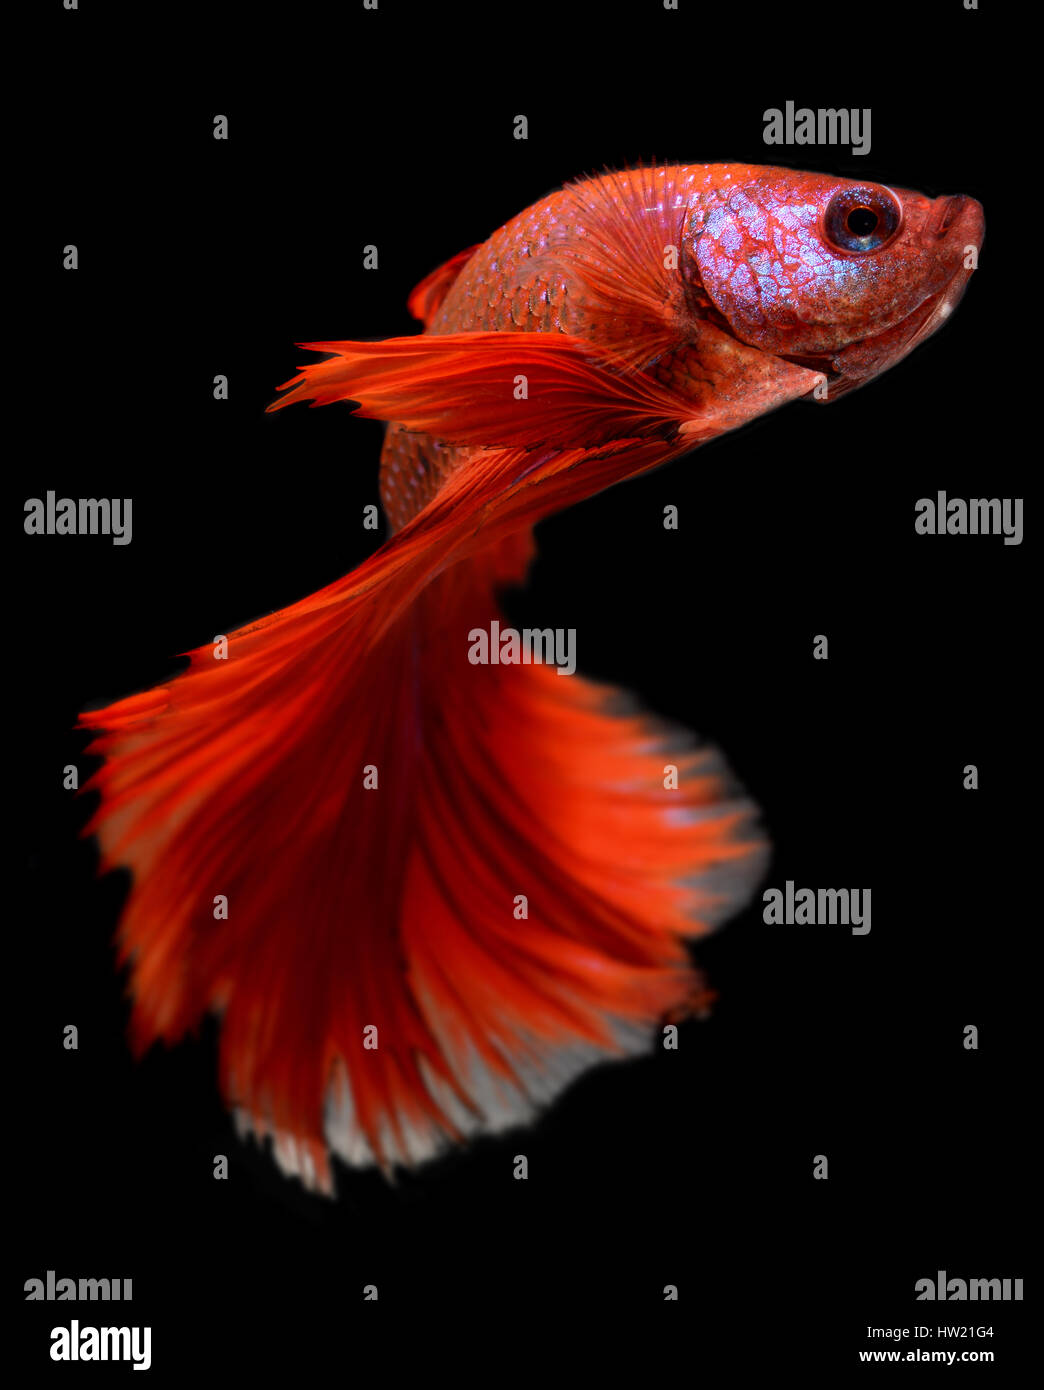 Action of Red haft moon long tail Betta fish or Siamese fighting ...